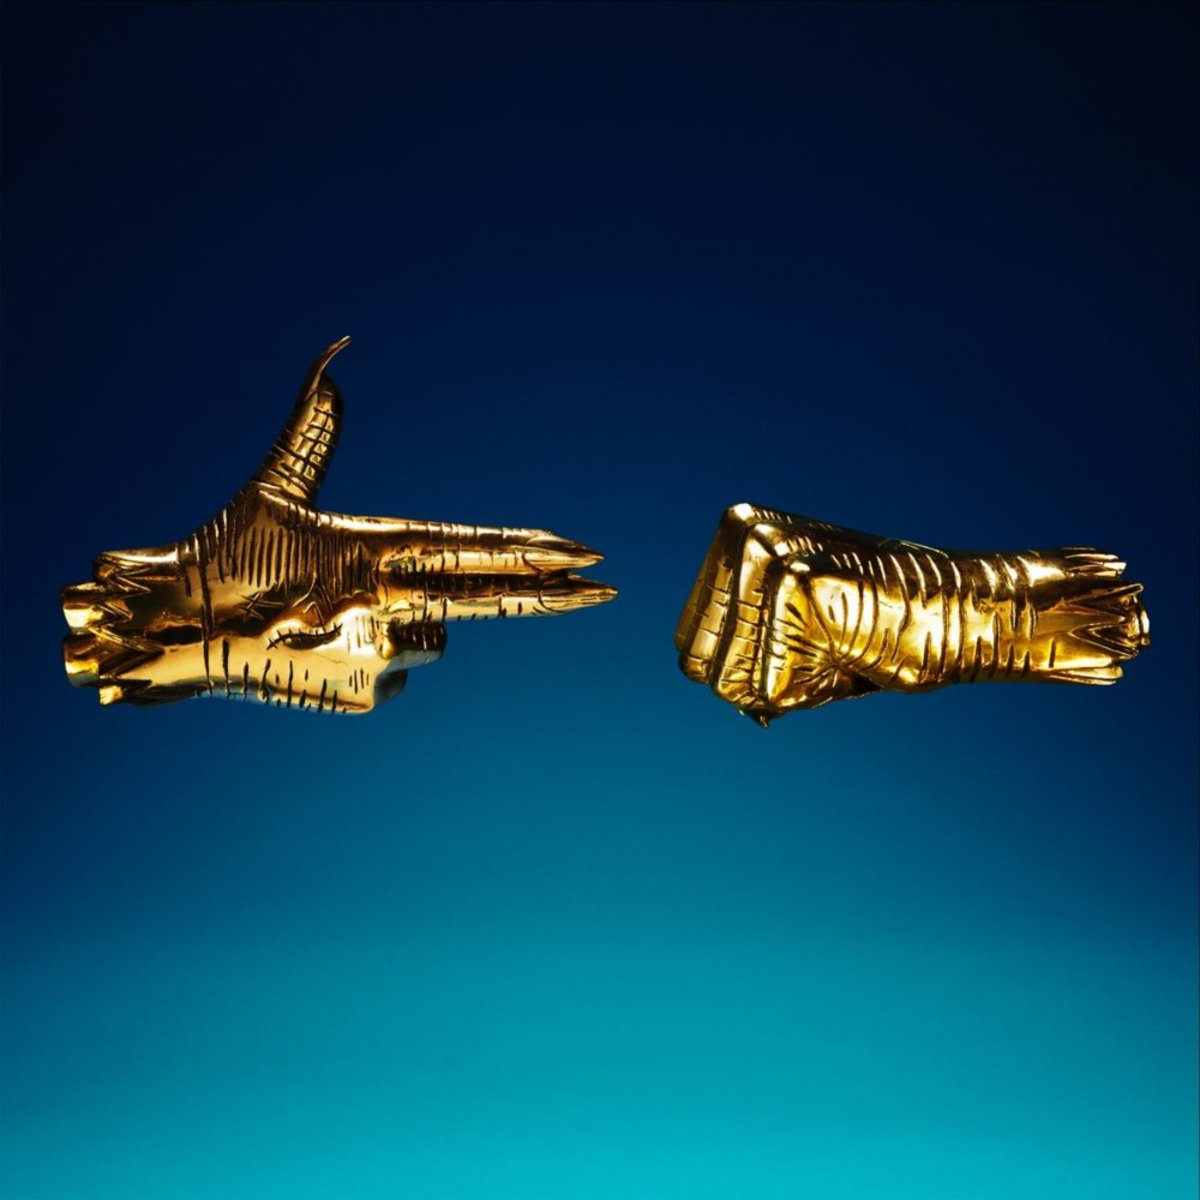 Artwork by Run The Jewels.